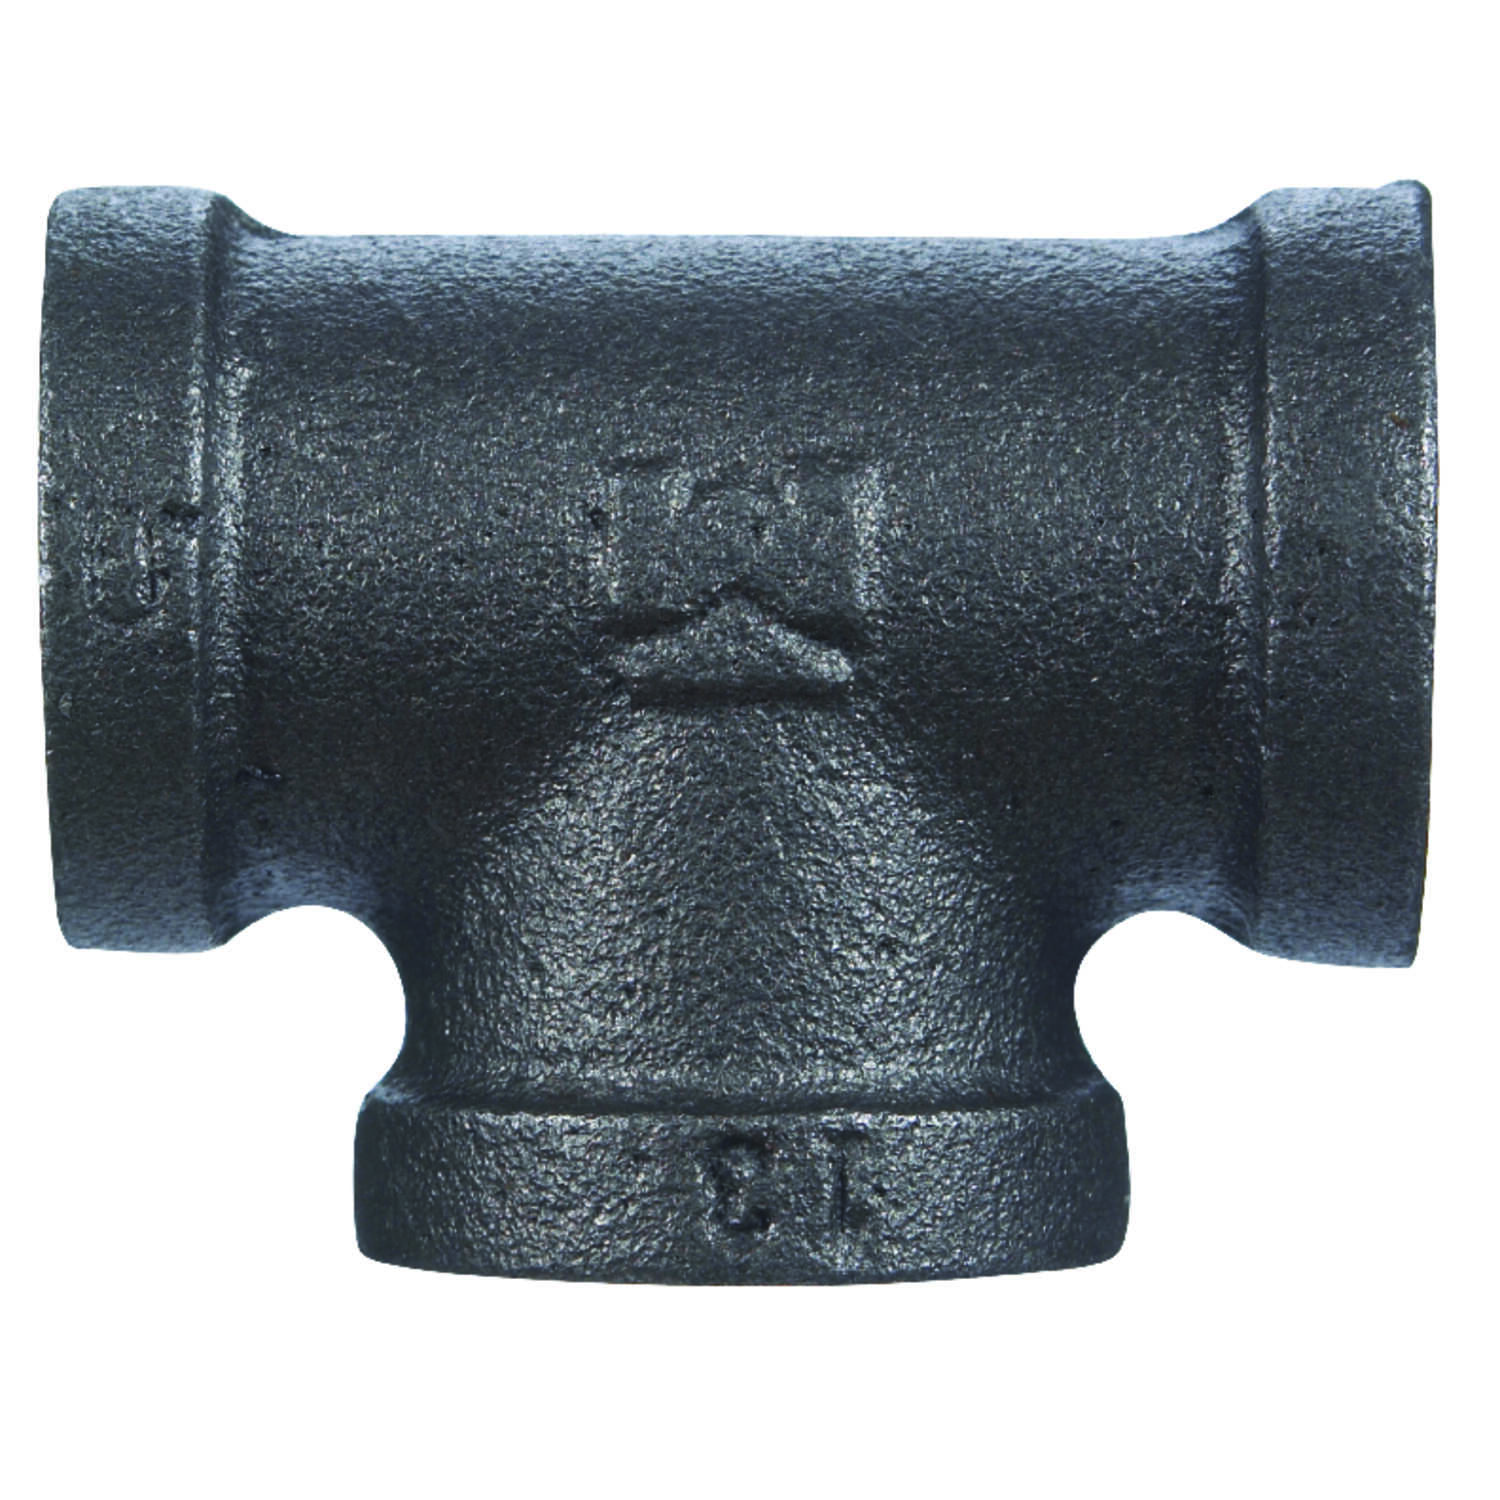 BK Products  1-1/2 in. FPT   x 1-1/2 in. Dia. FPT  Black  Malleable Iron  Tee